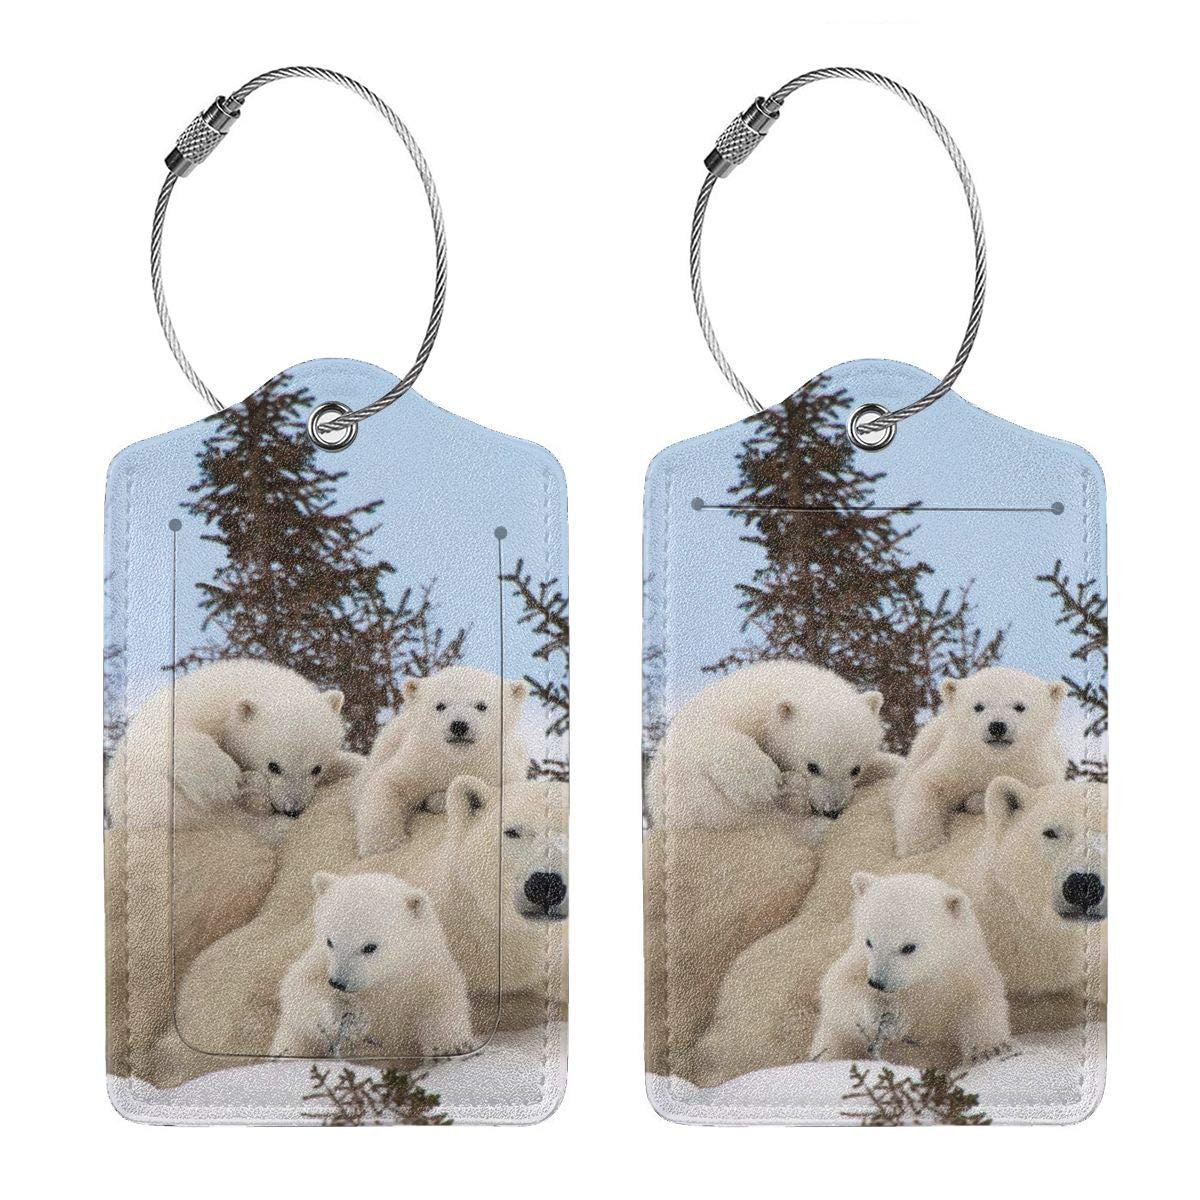 Polar Bear Family Travel Luggage Tags With Full Privacy Cover Leather Case And Stainless Steel Loop